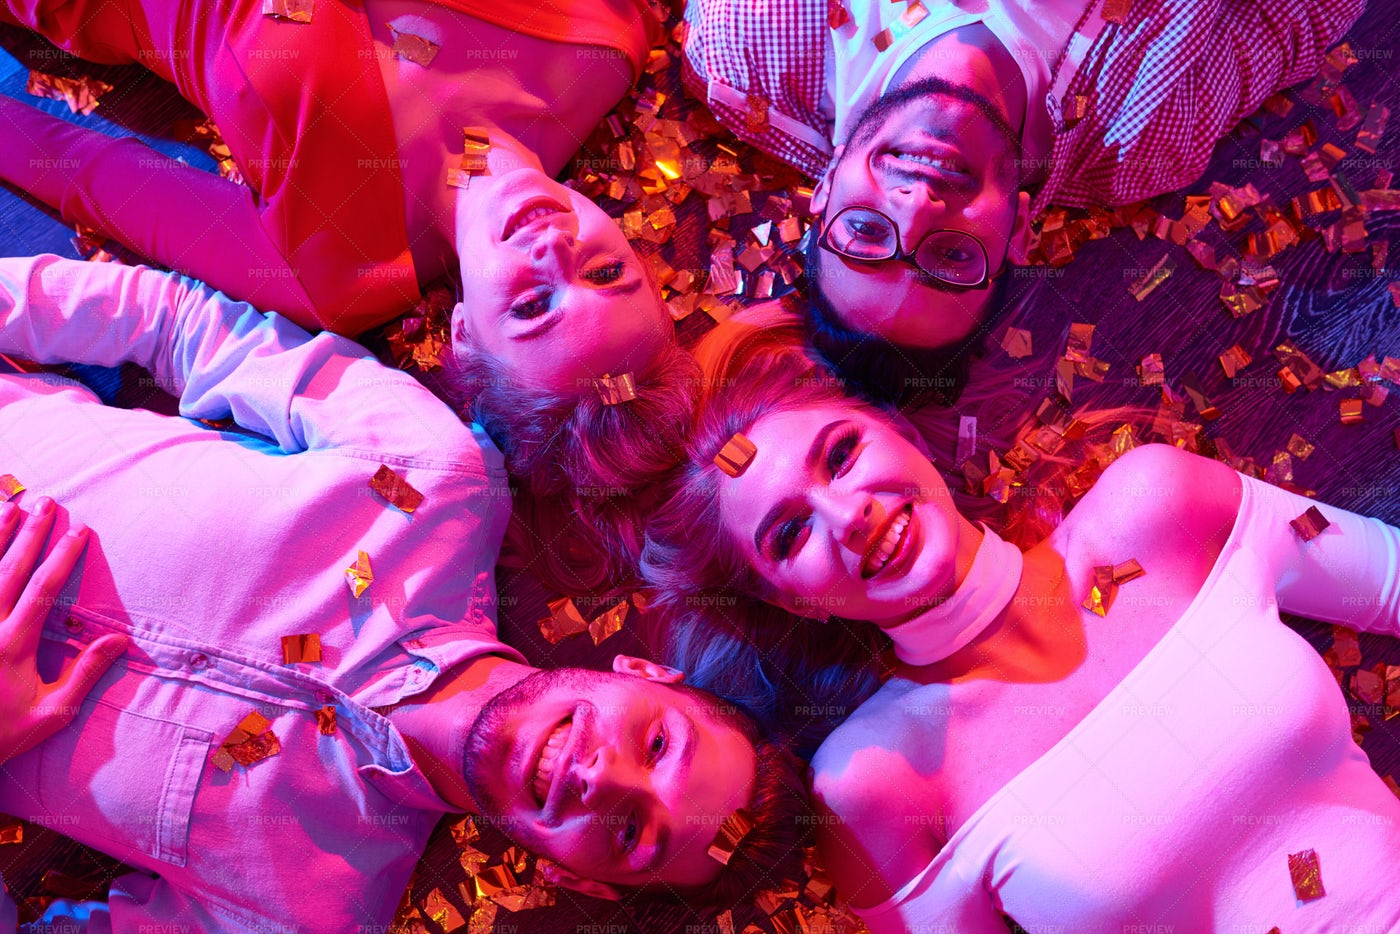 Young People At Raging Party: Stock Photos